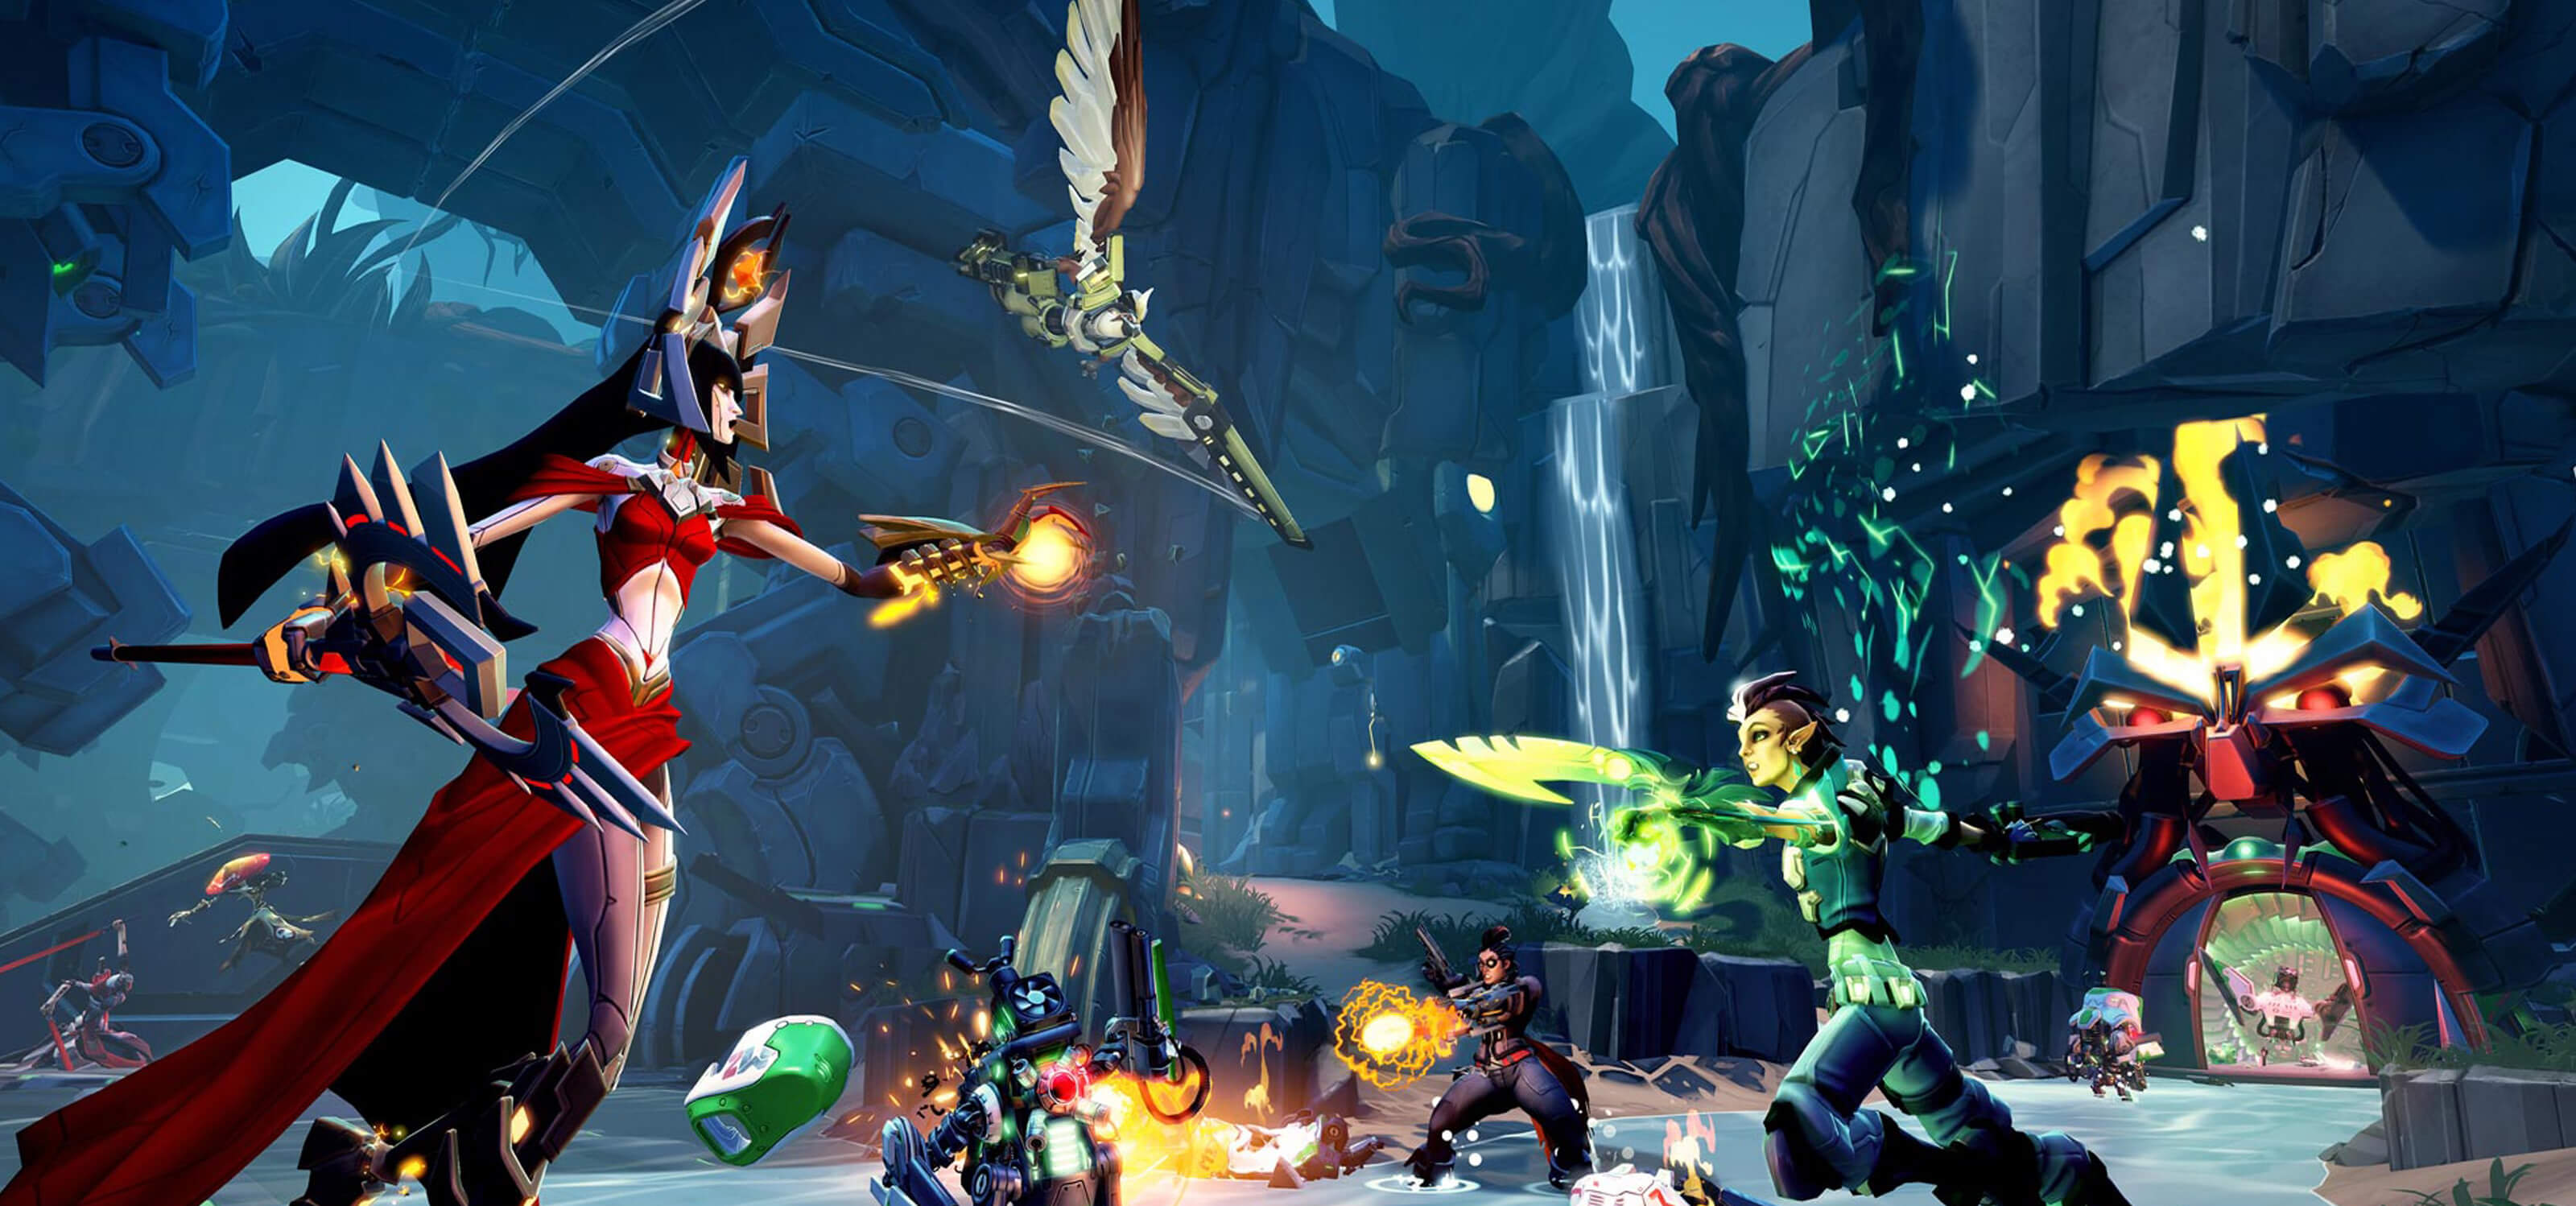 Screenshot of various colorful Battleborn characters competing in a cavern in meltdown mode